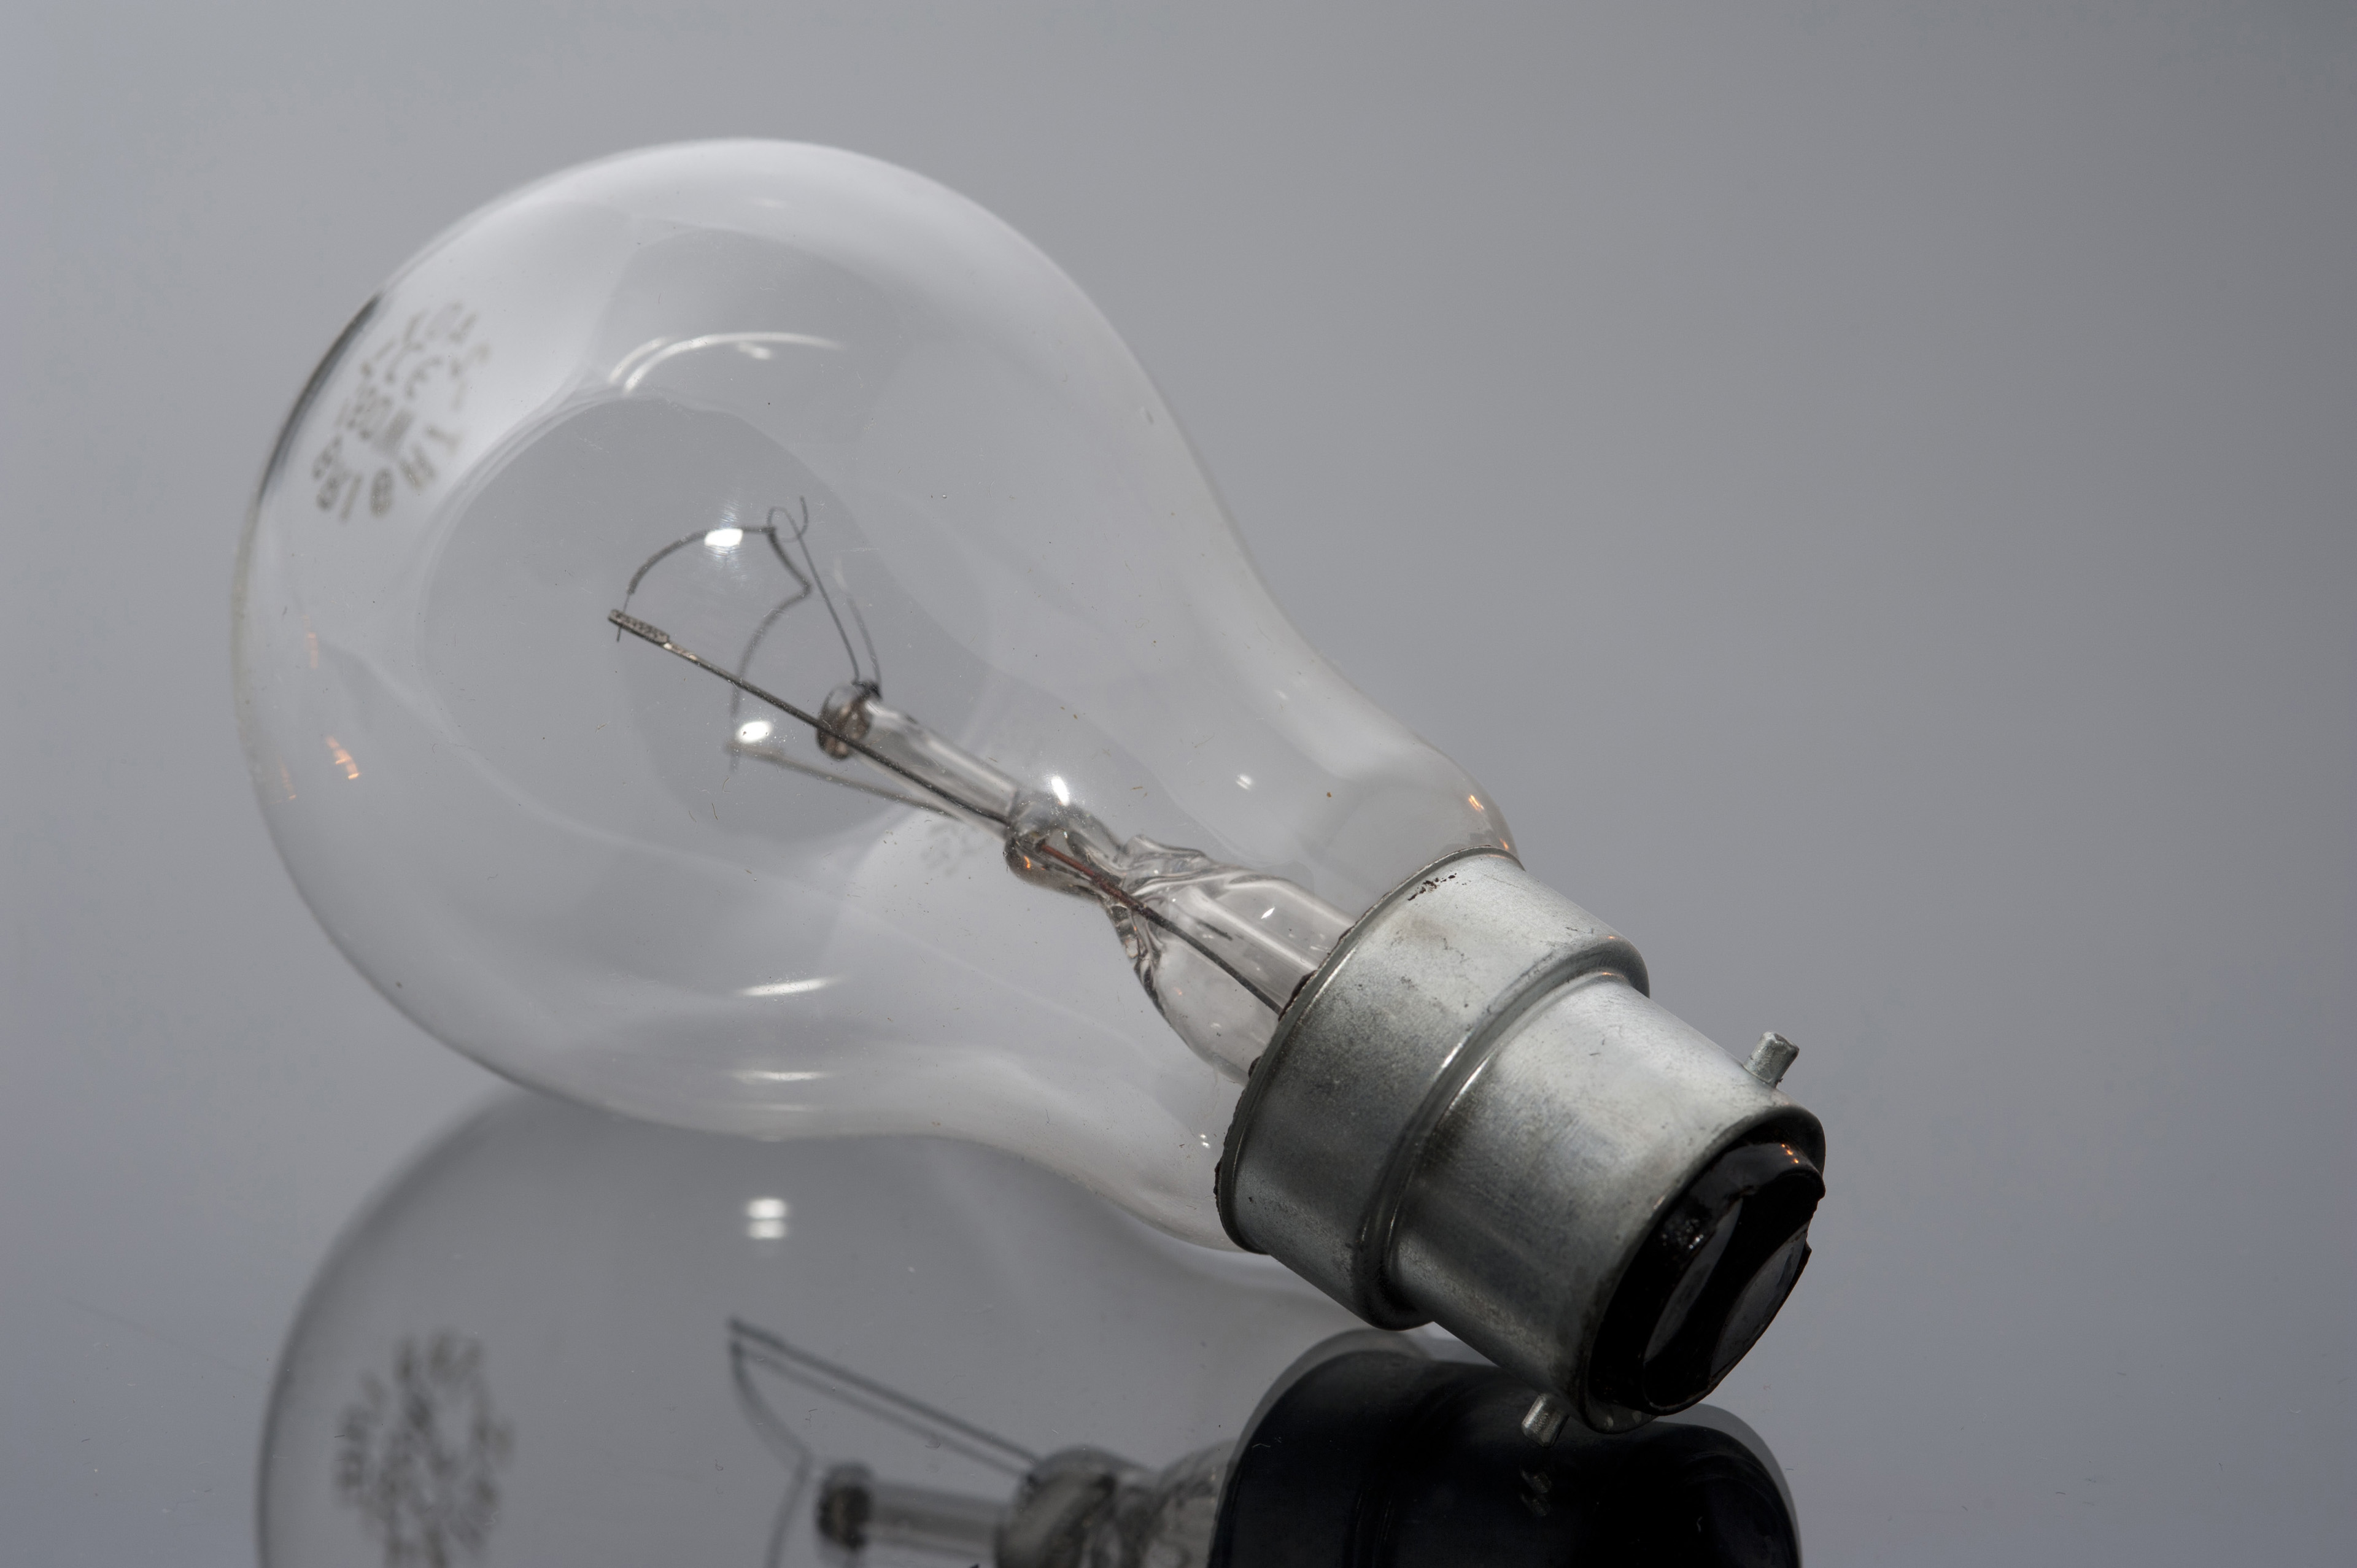 Close up Shot of Conceptual Unlit Bulb on Glossy Gray Table, Emphasizing its Reflection.